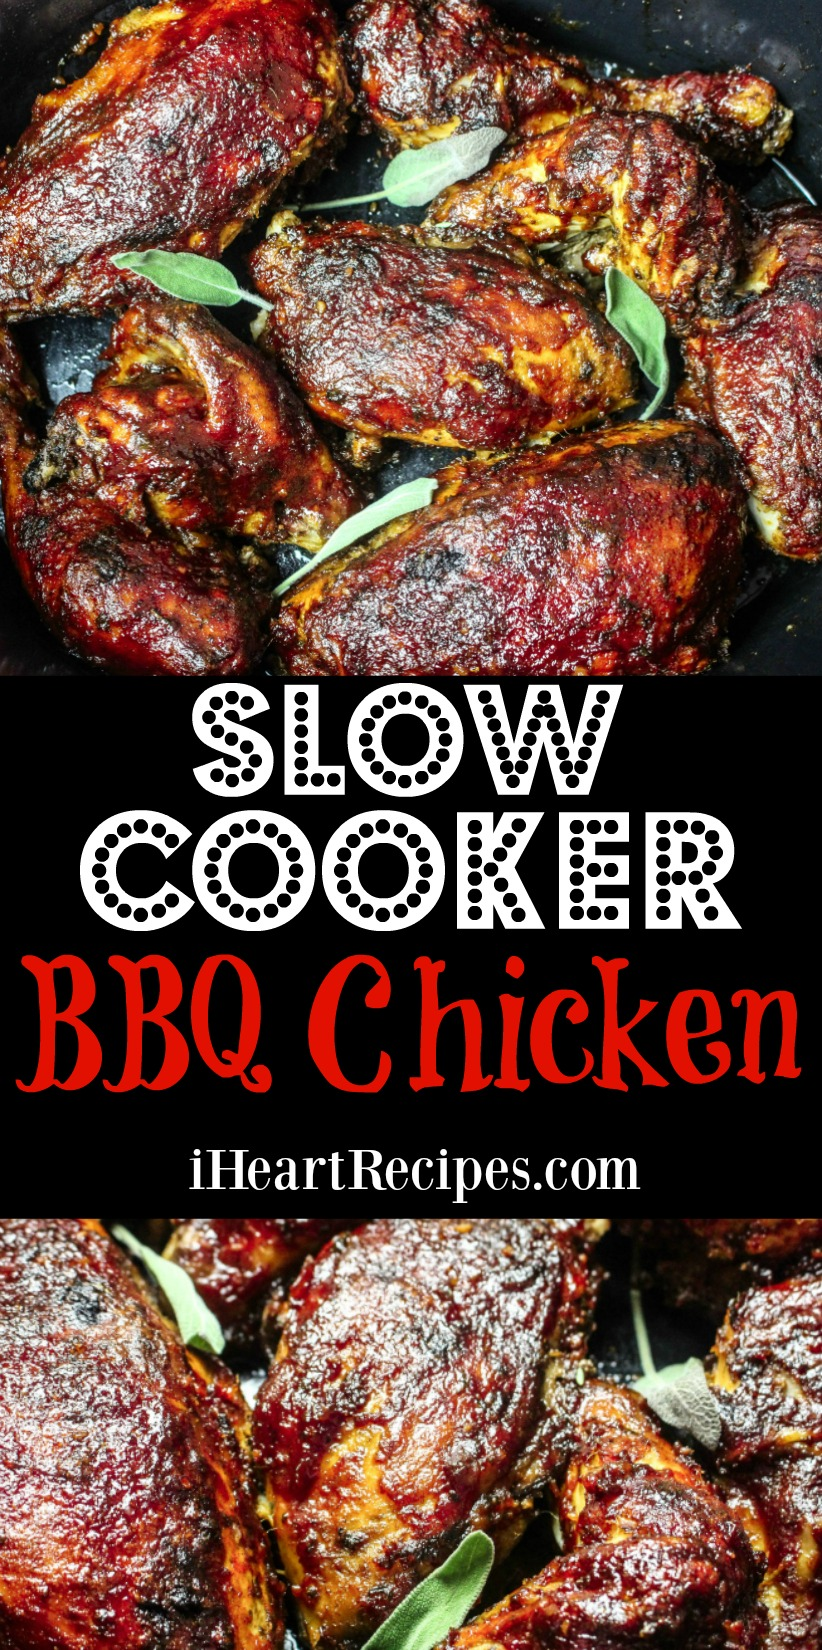 You can't beat this slow cooker BBQ chicken recipe if you're looking for a summertime dinner any time!